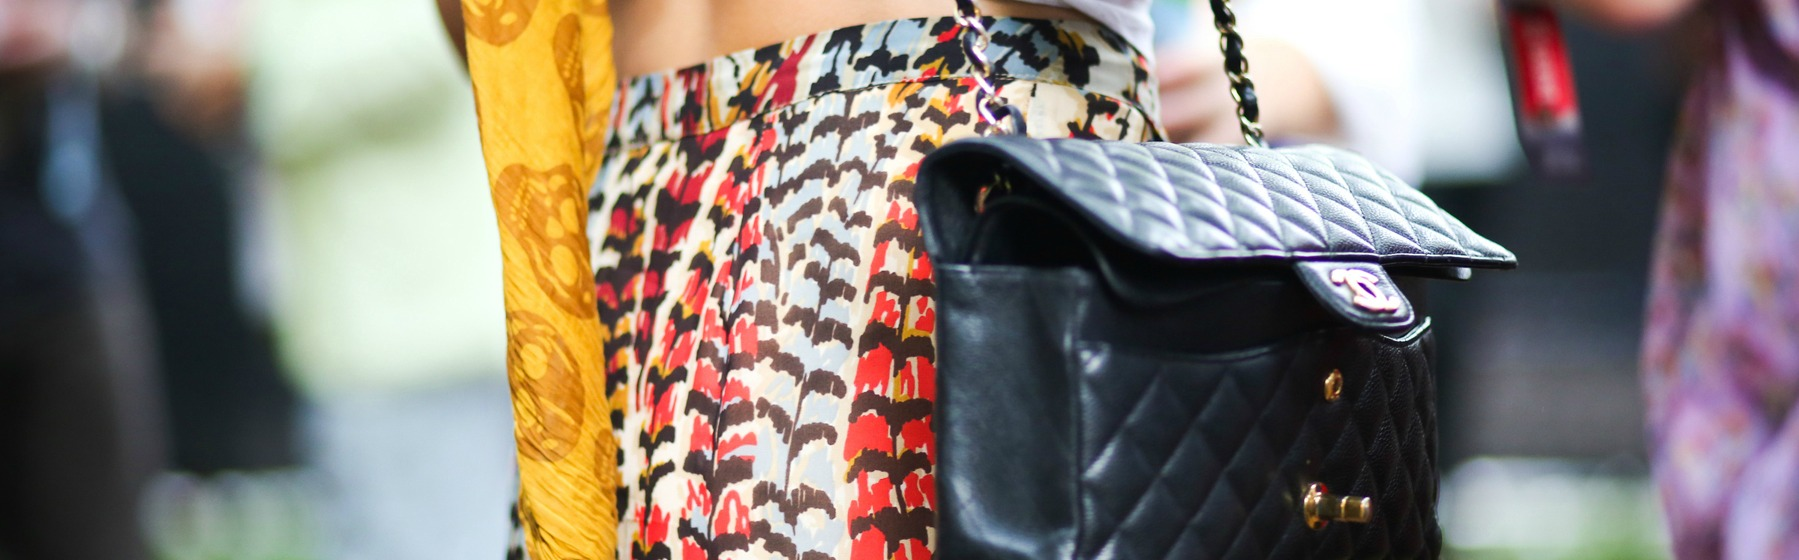 HOW TO WEAR FLORAL PRINTS TO WORK